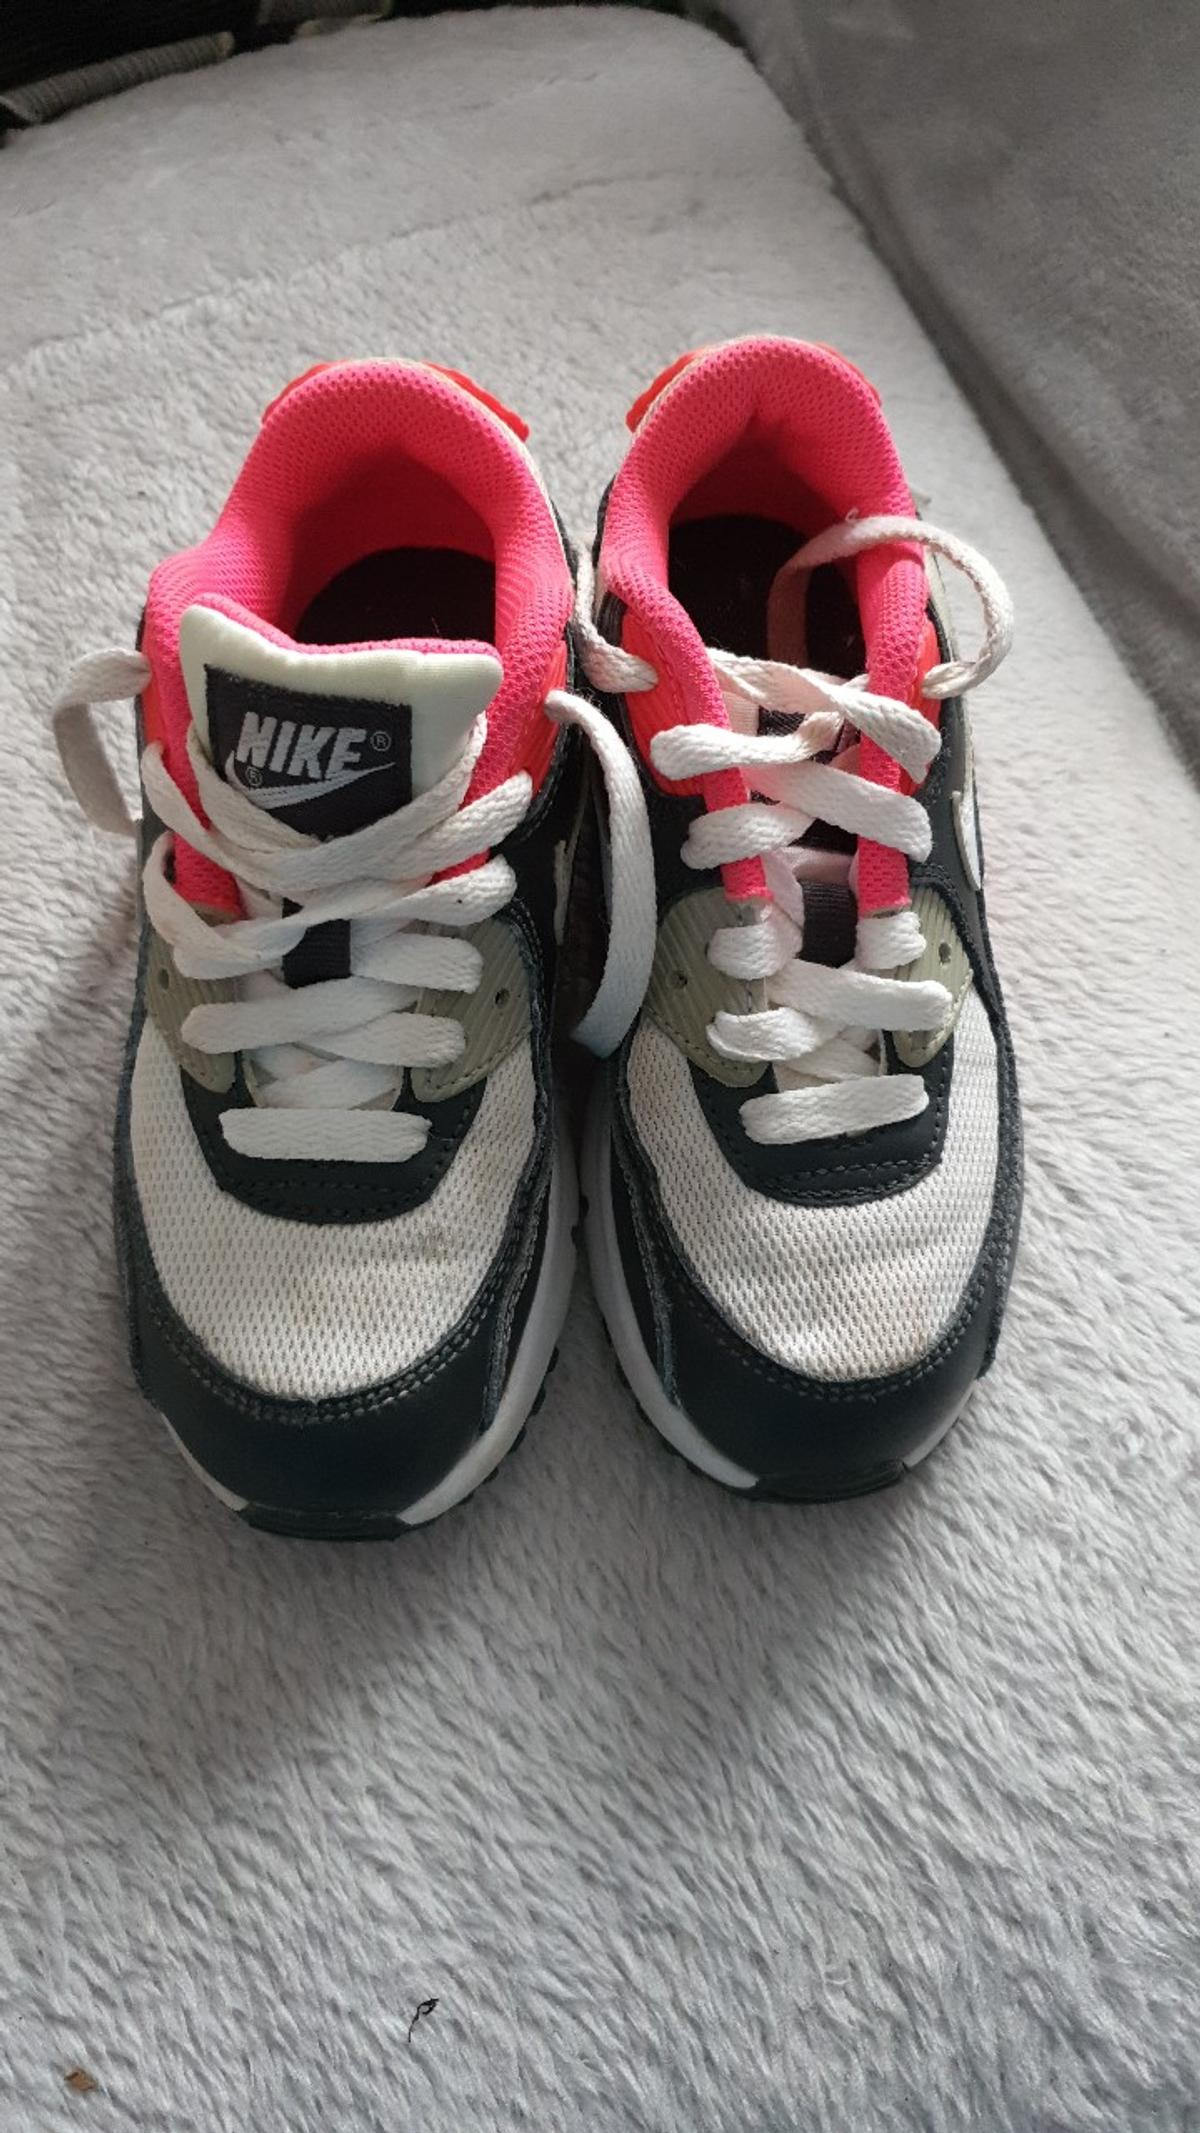 nike trainers size 28.5 excellent cond loads of life in them